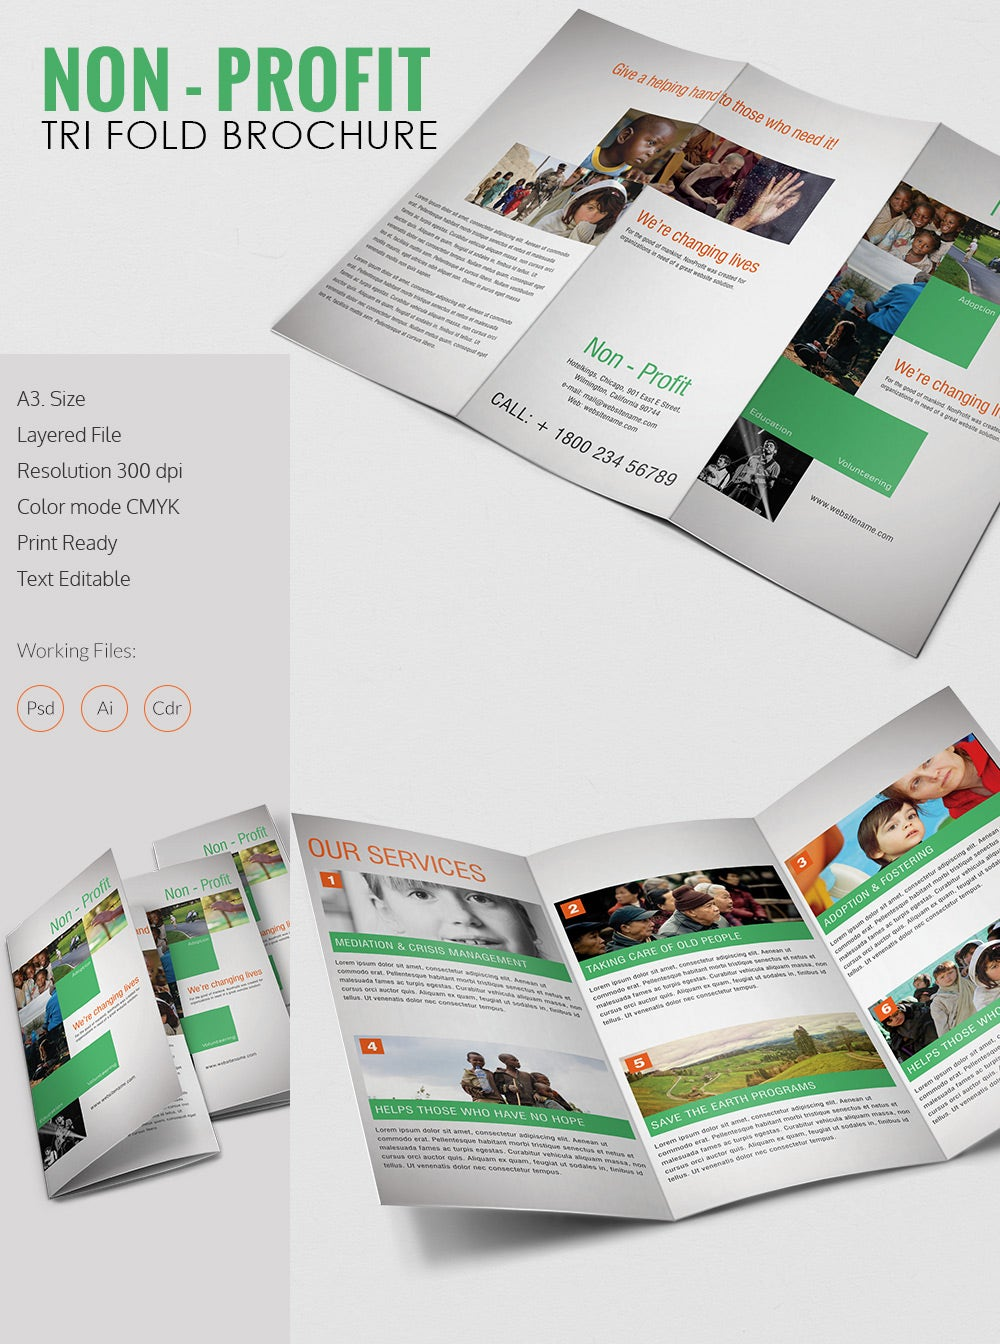 Tri fold brochure template 45 free word pdf psd eps for Brochure samples templates